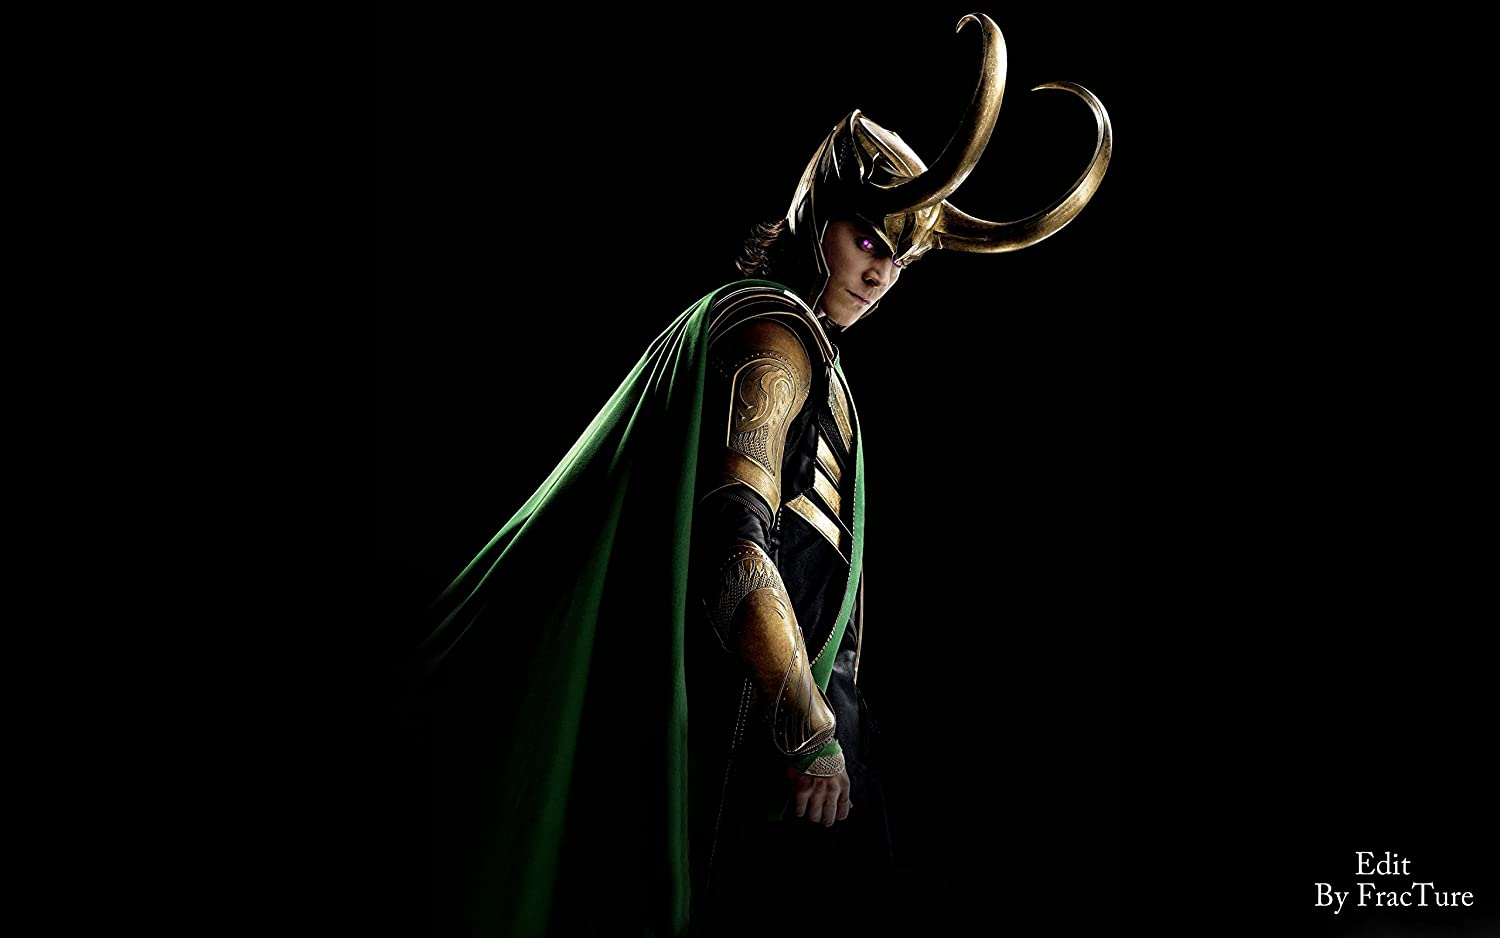 Posterhouzz Movie The Avengers Tom Hiddleston Loki Avengers